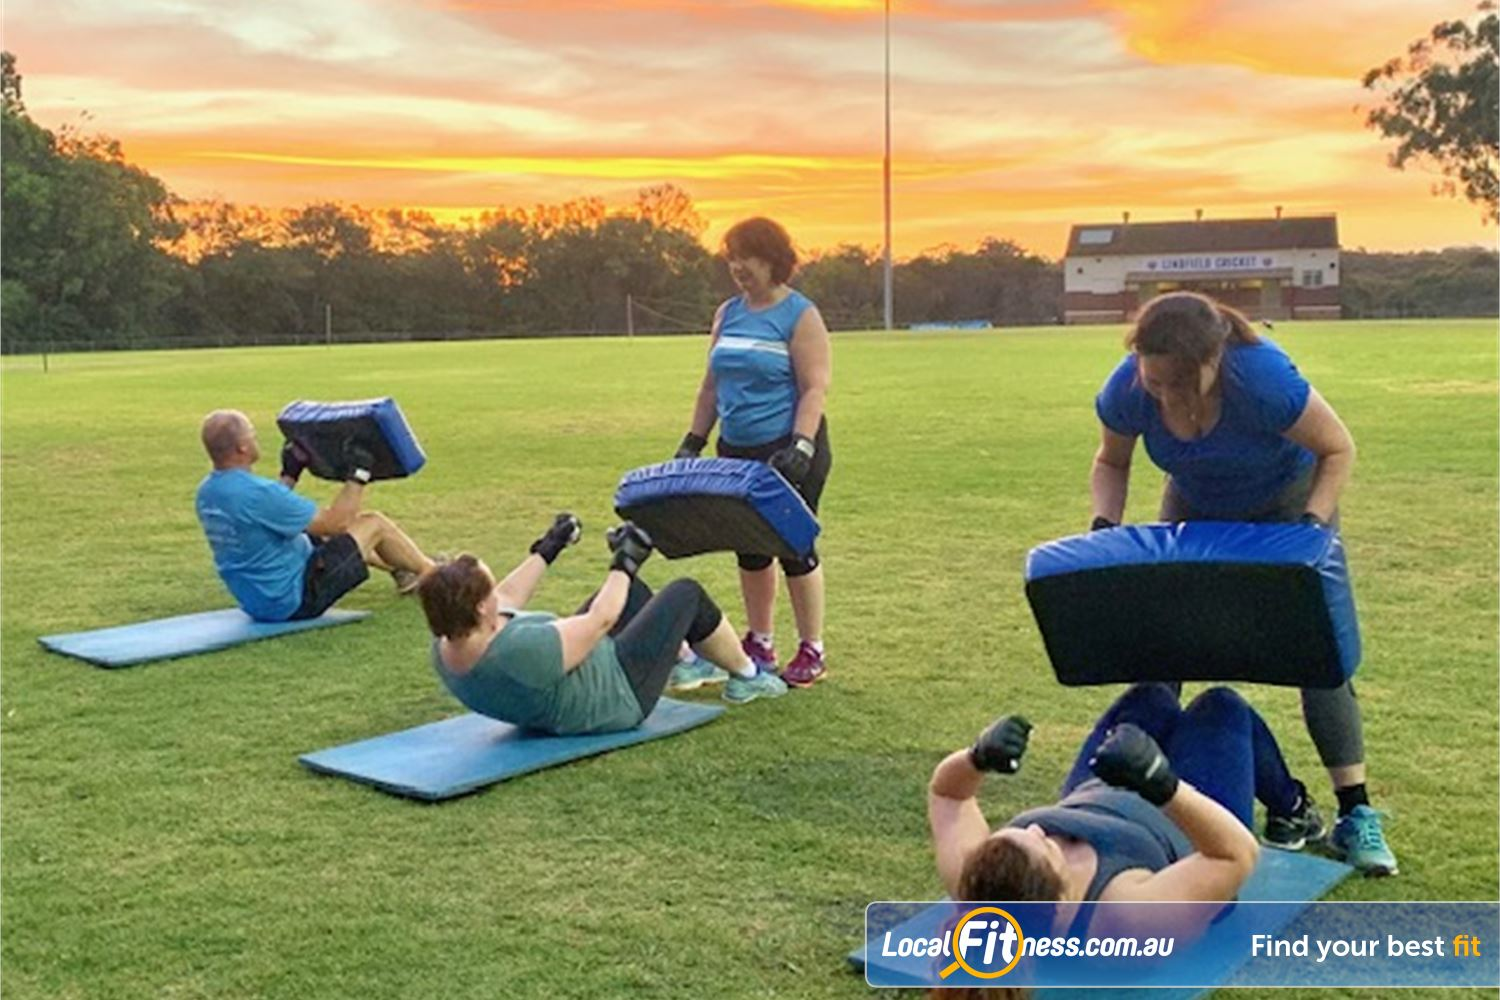 Refresh You Turramurra Our Turramurra group fitness classes will help you refocus and re-vitalise.